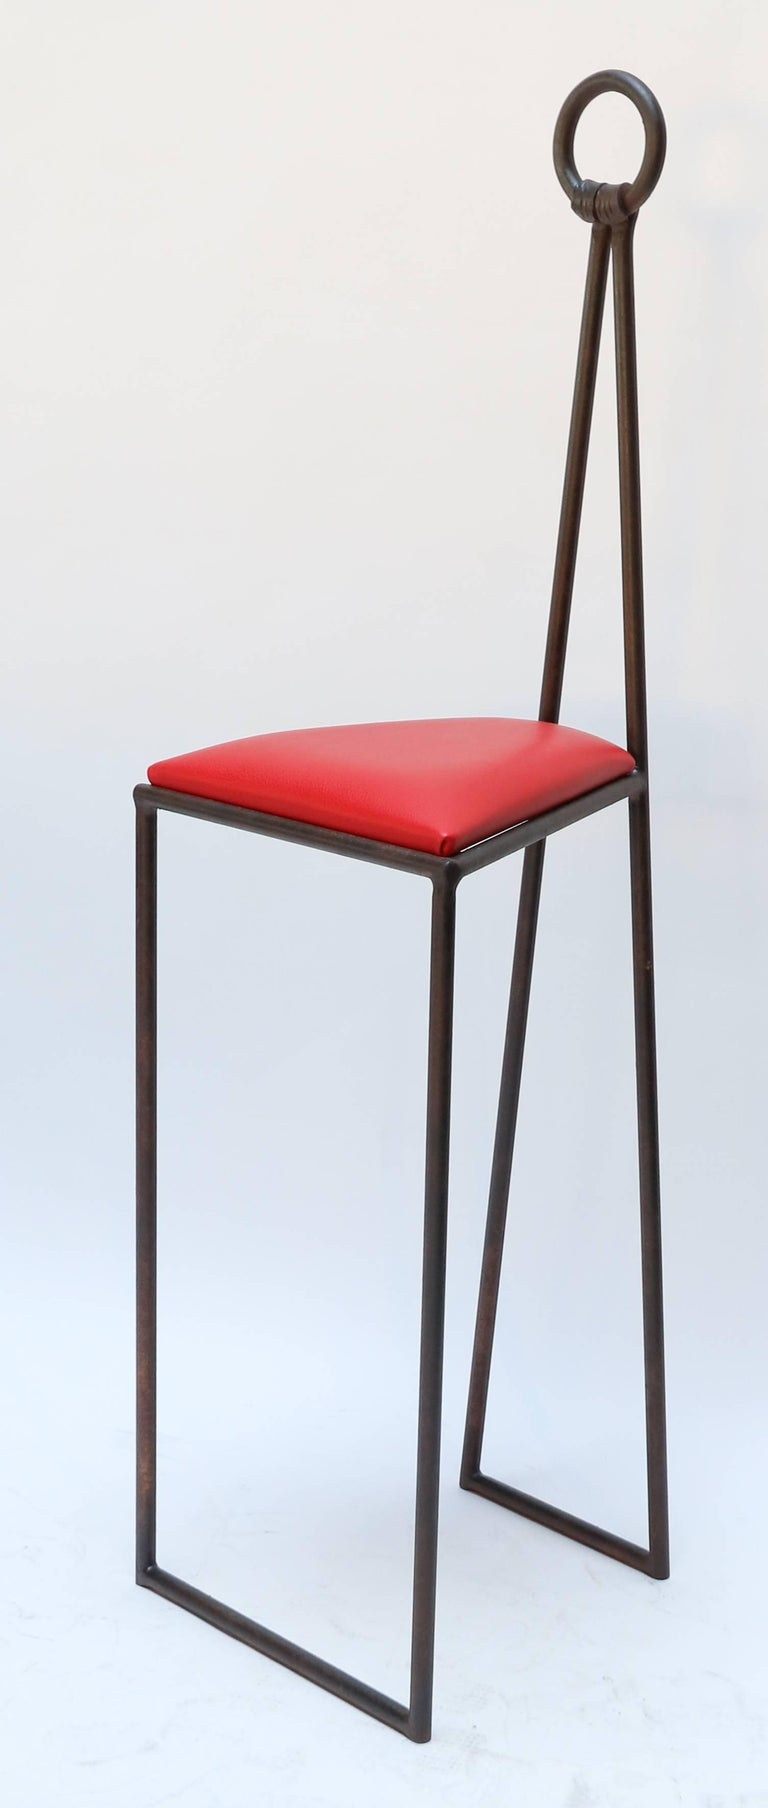 Custom Iron Bar Stools With Red Leather Seats For Sale At